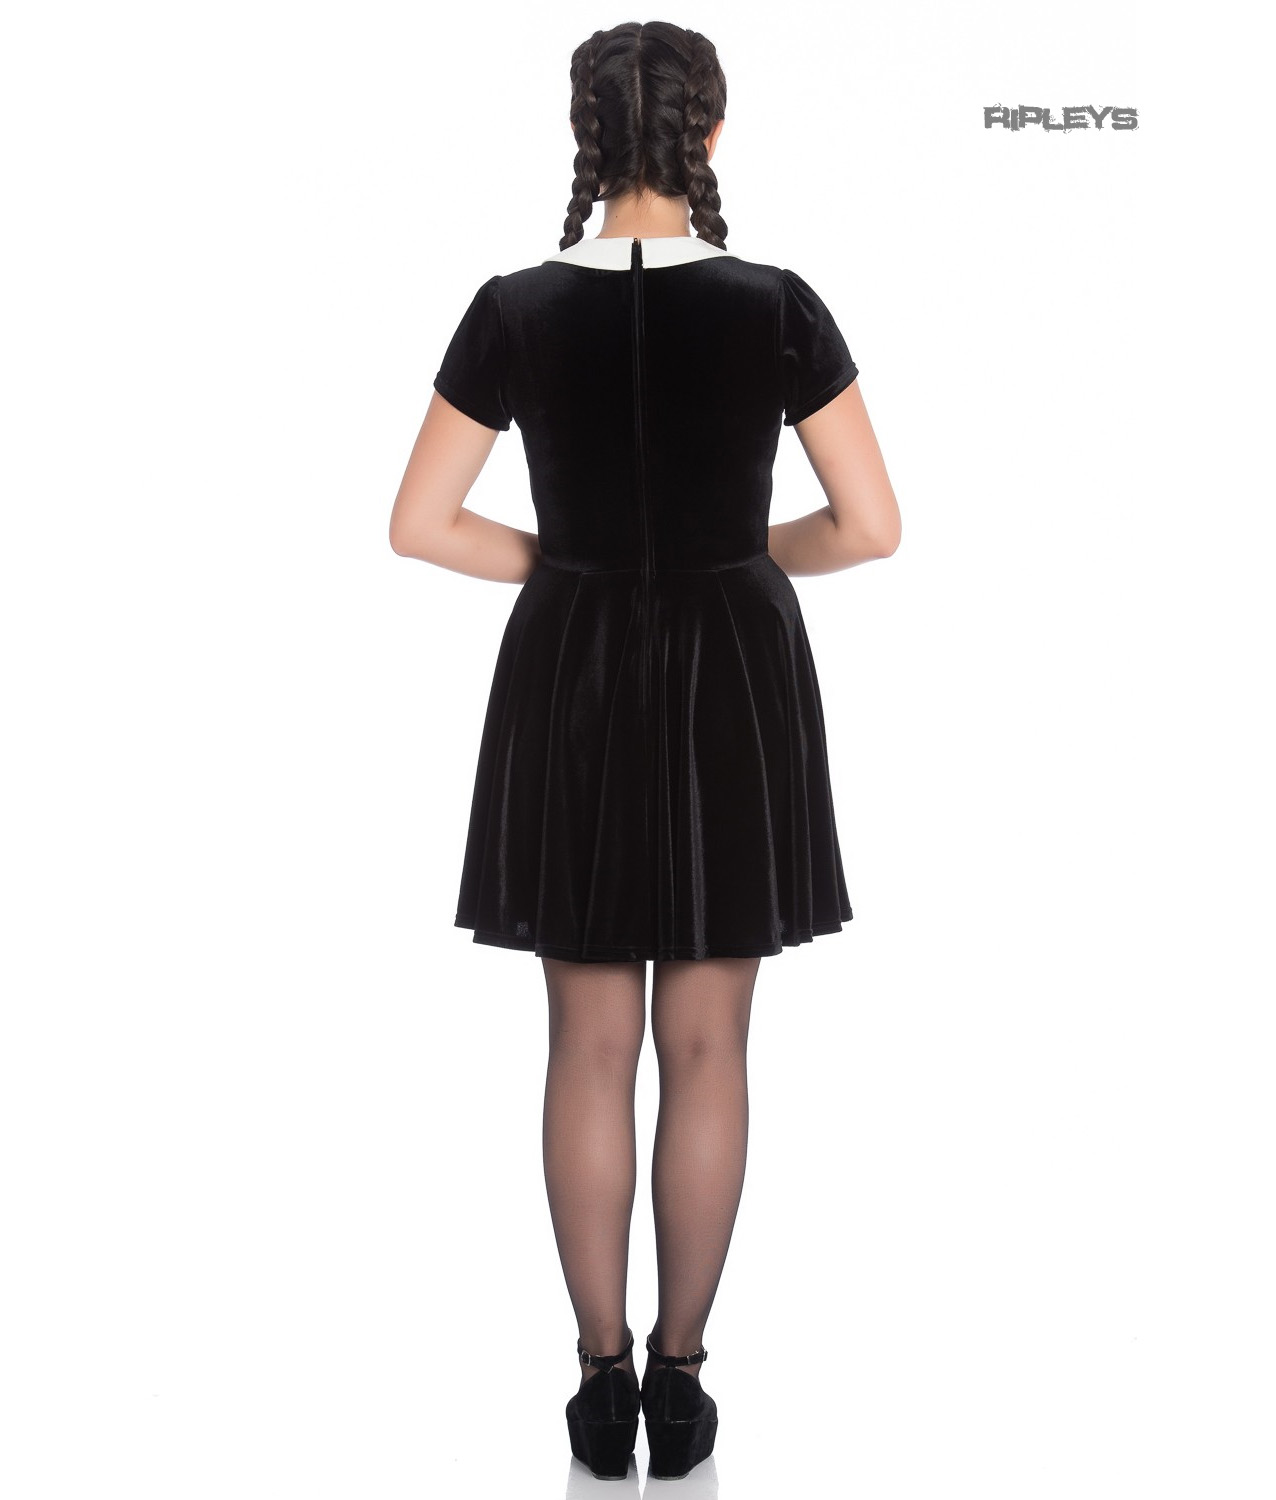 Hell-Bunny-Gothic-Mini-Skater-Dress-MISS-MUFFET-Spiders-Black-Velvet-All-Sizes thumbnail 8